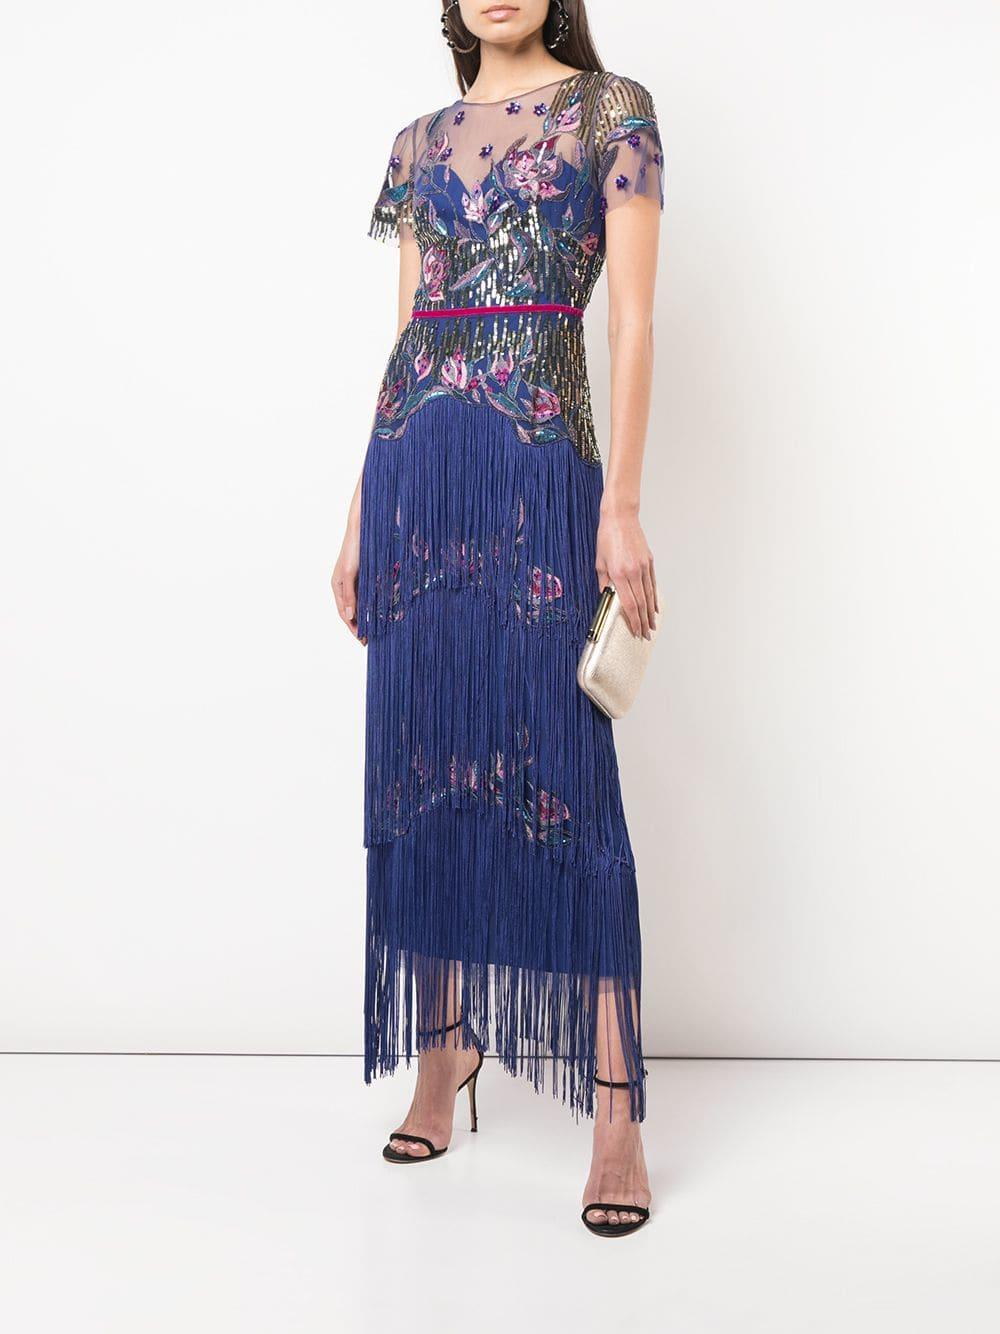 c07314155444 Marchesa notte Tiered Fringe Evening Gown in Blue - Lyst